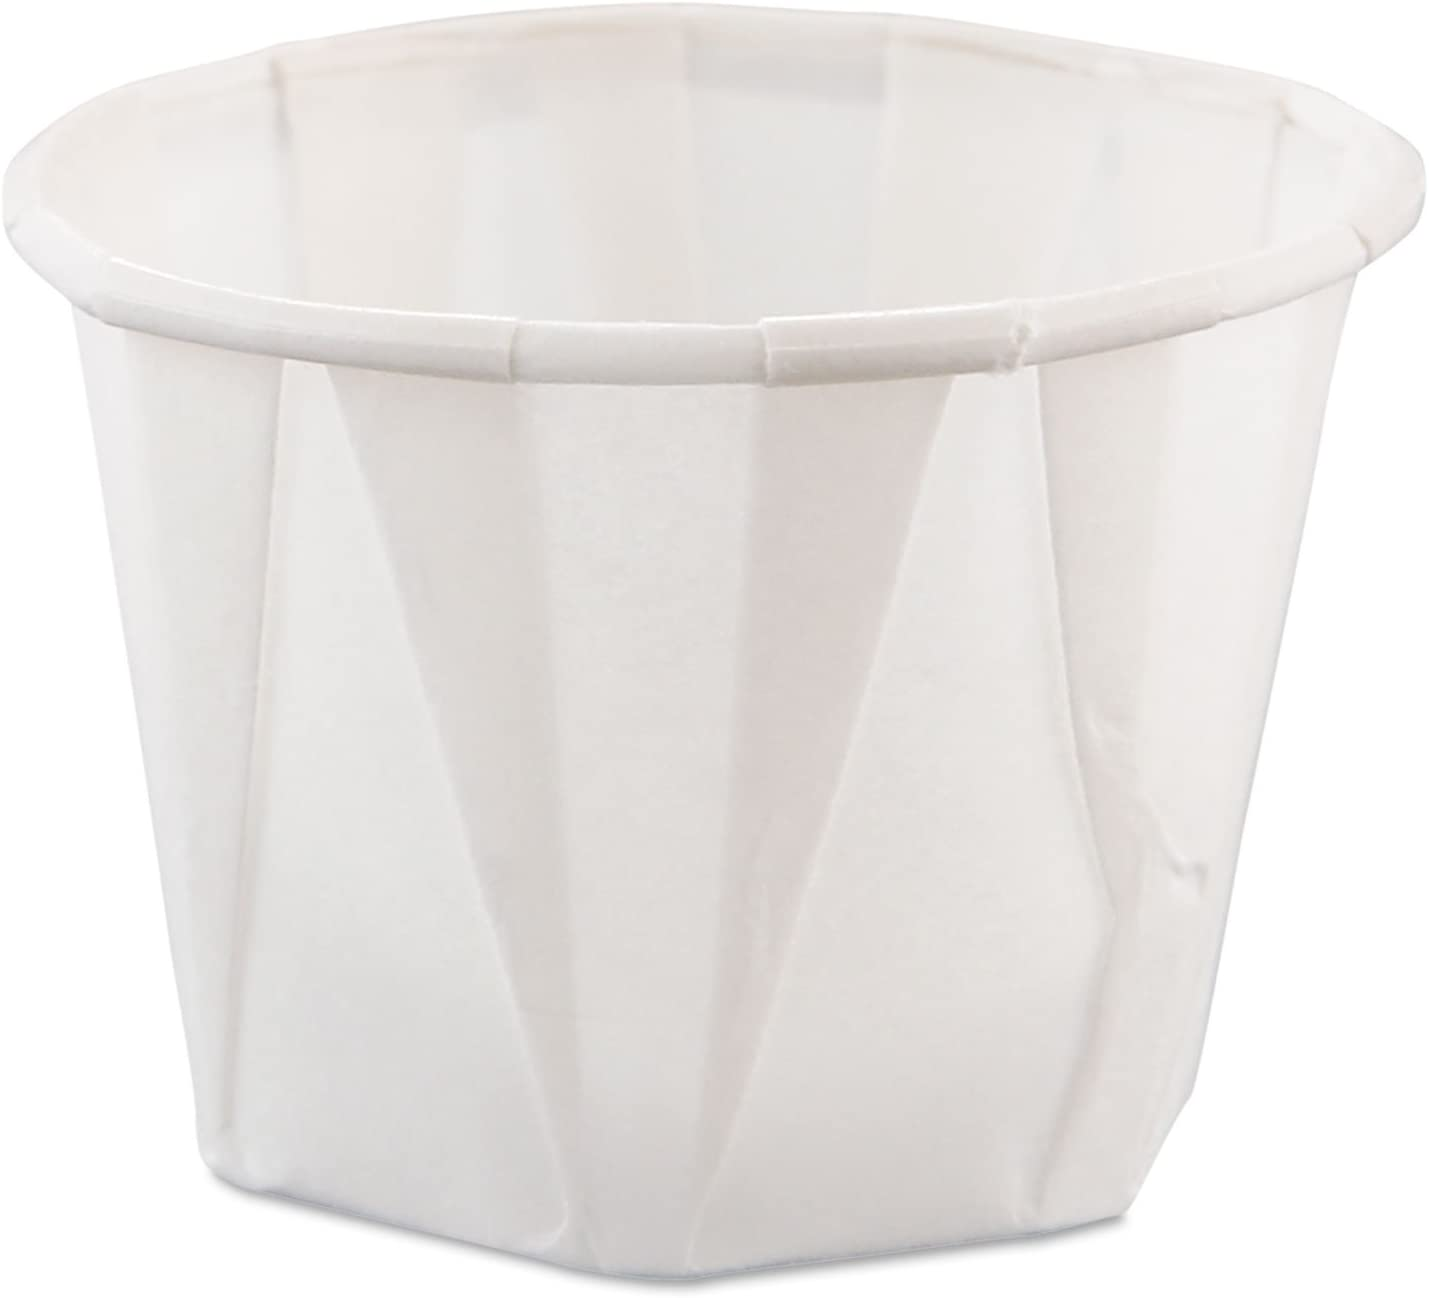 Scc100 Ppr Super intense SALE Souffle Cup 1Oz 250 WHI Ranking integrated 1st place 20 Treated